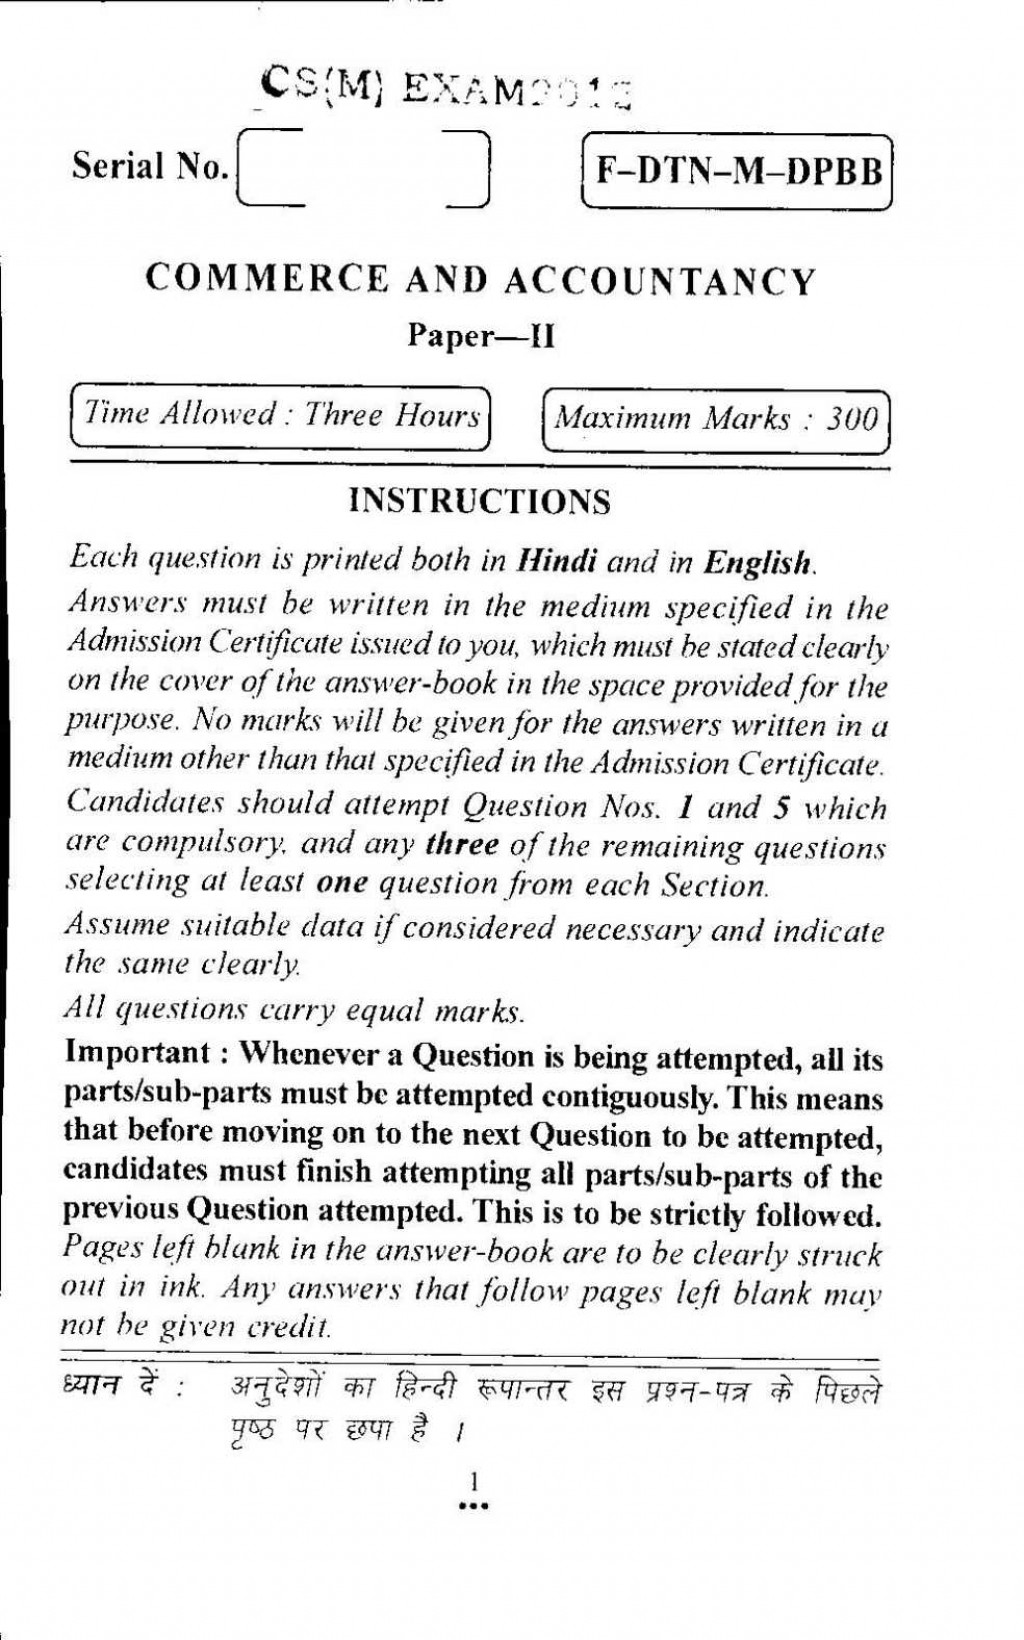 012 American Essay Civil Services Examination Commerce And Accountancy Paper Ii Previous Years Que Striking Format Literature Topics Identity Titles Large